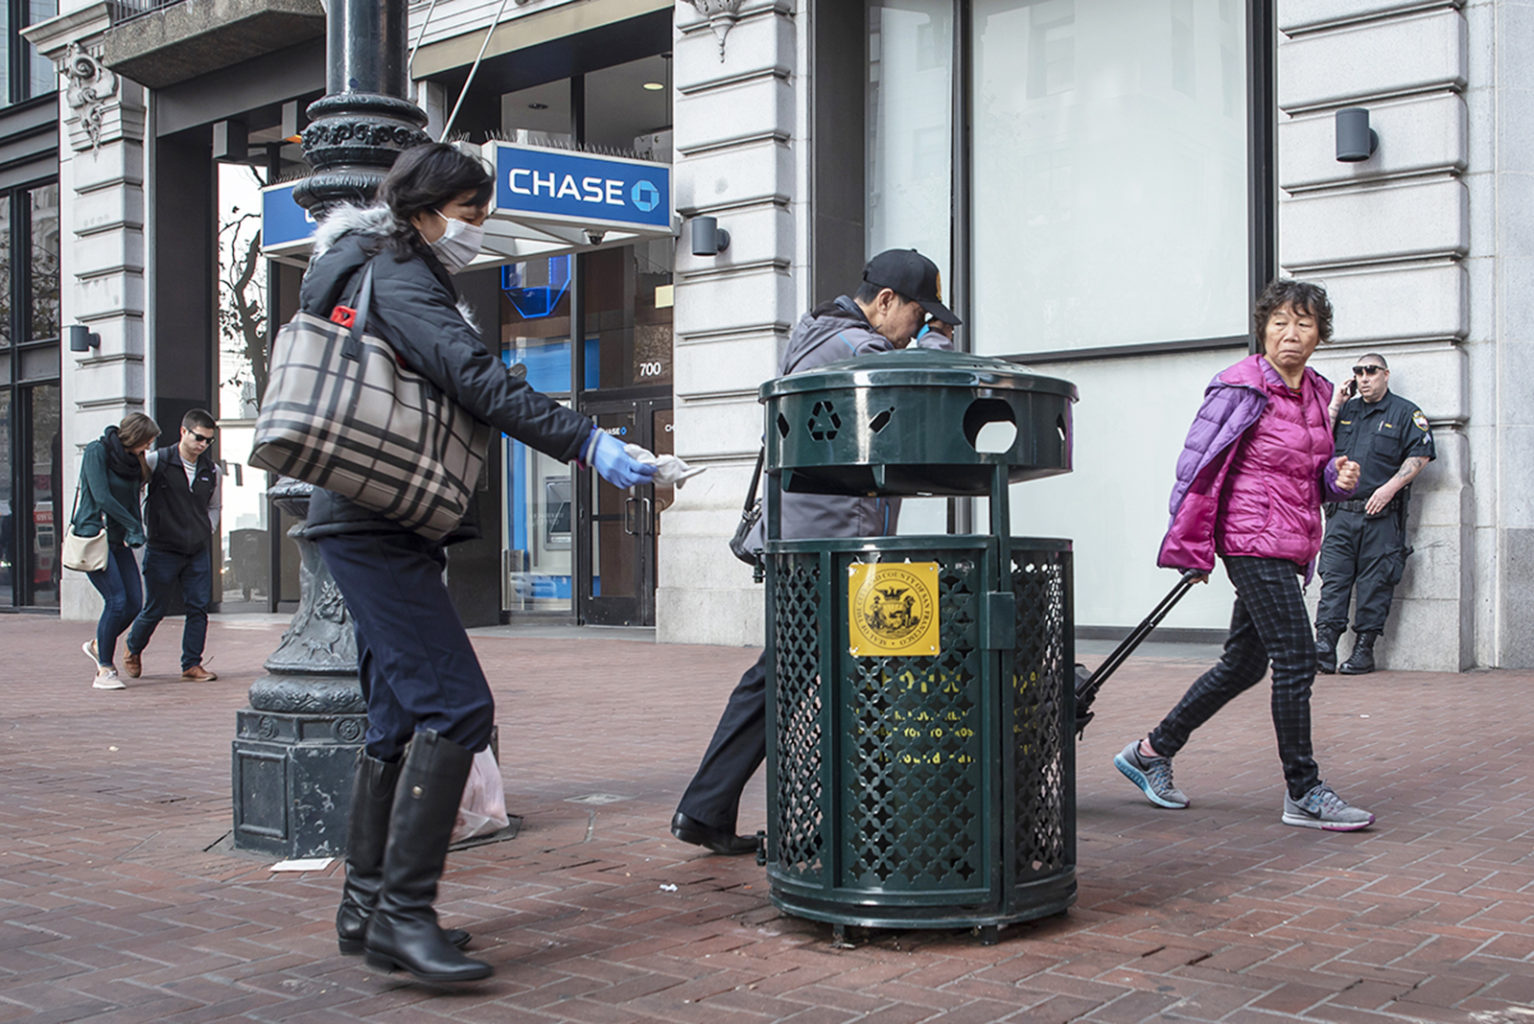 A woman throws an item away in a trash can on Market Street on Tuesday, Nov. 20, 2018. (DavÌd RodrÌguez/Special to S.F. Examiner)